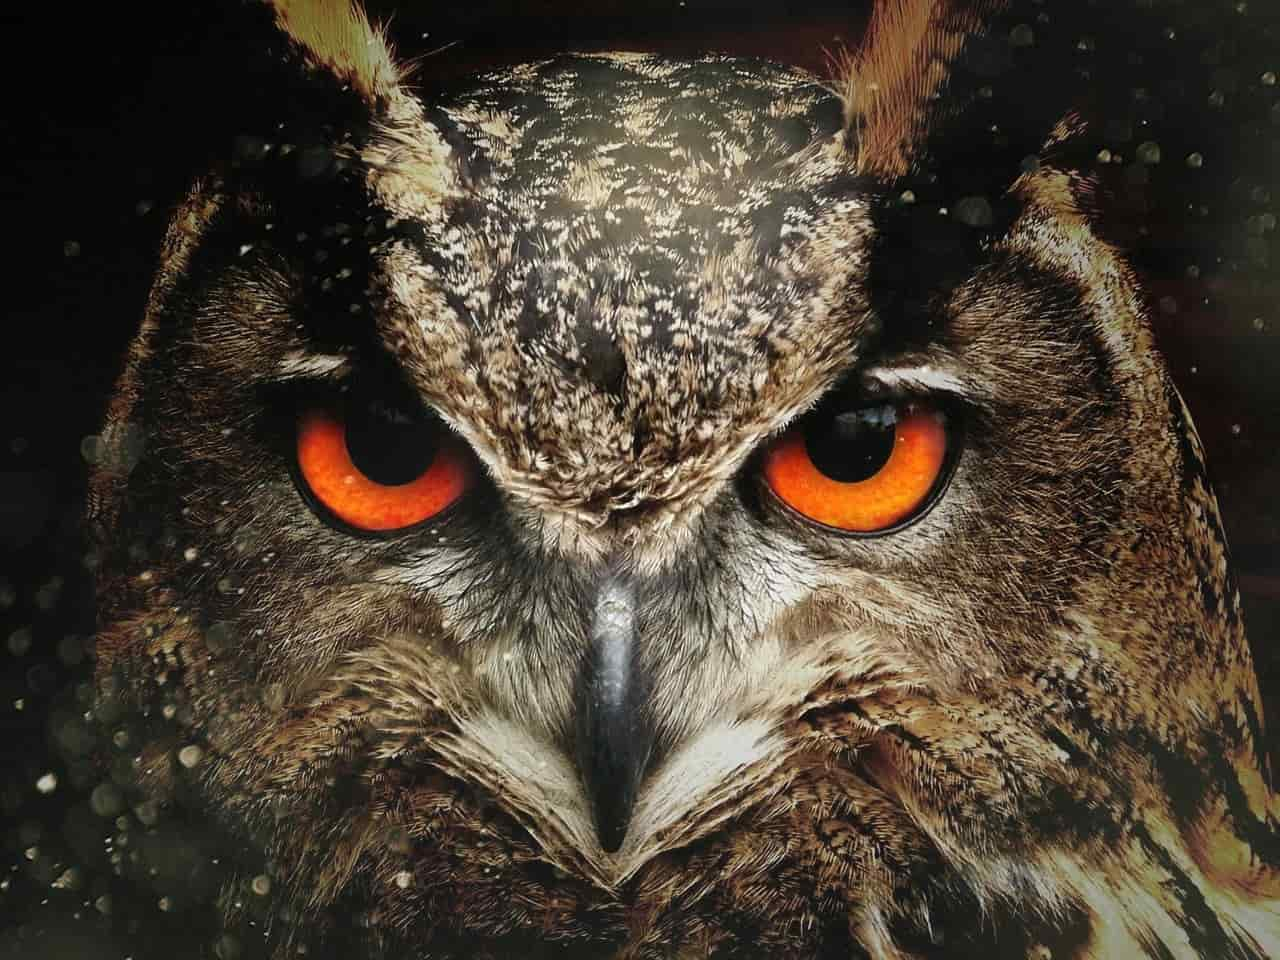 Image of an owl spirit animal